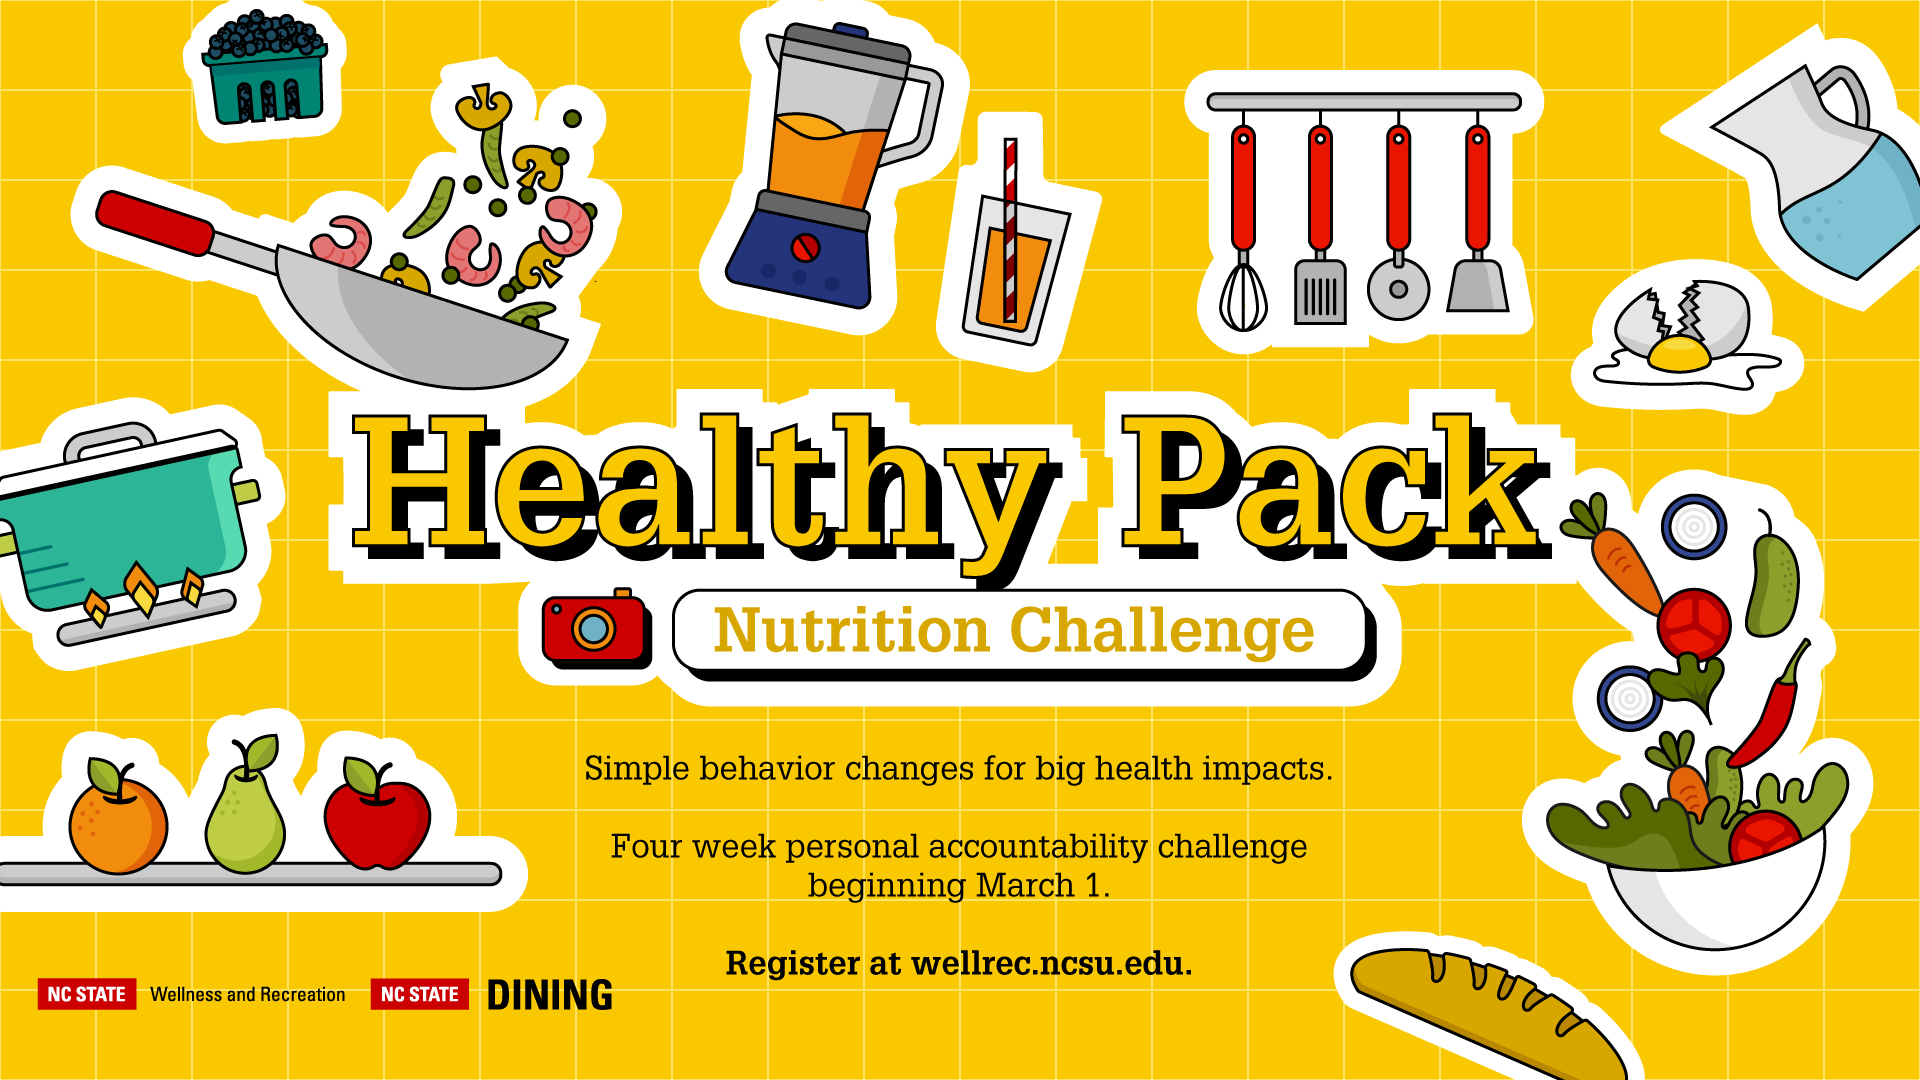 Healthy Pack Challenge